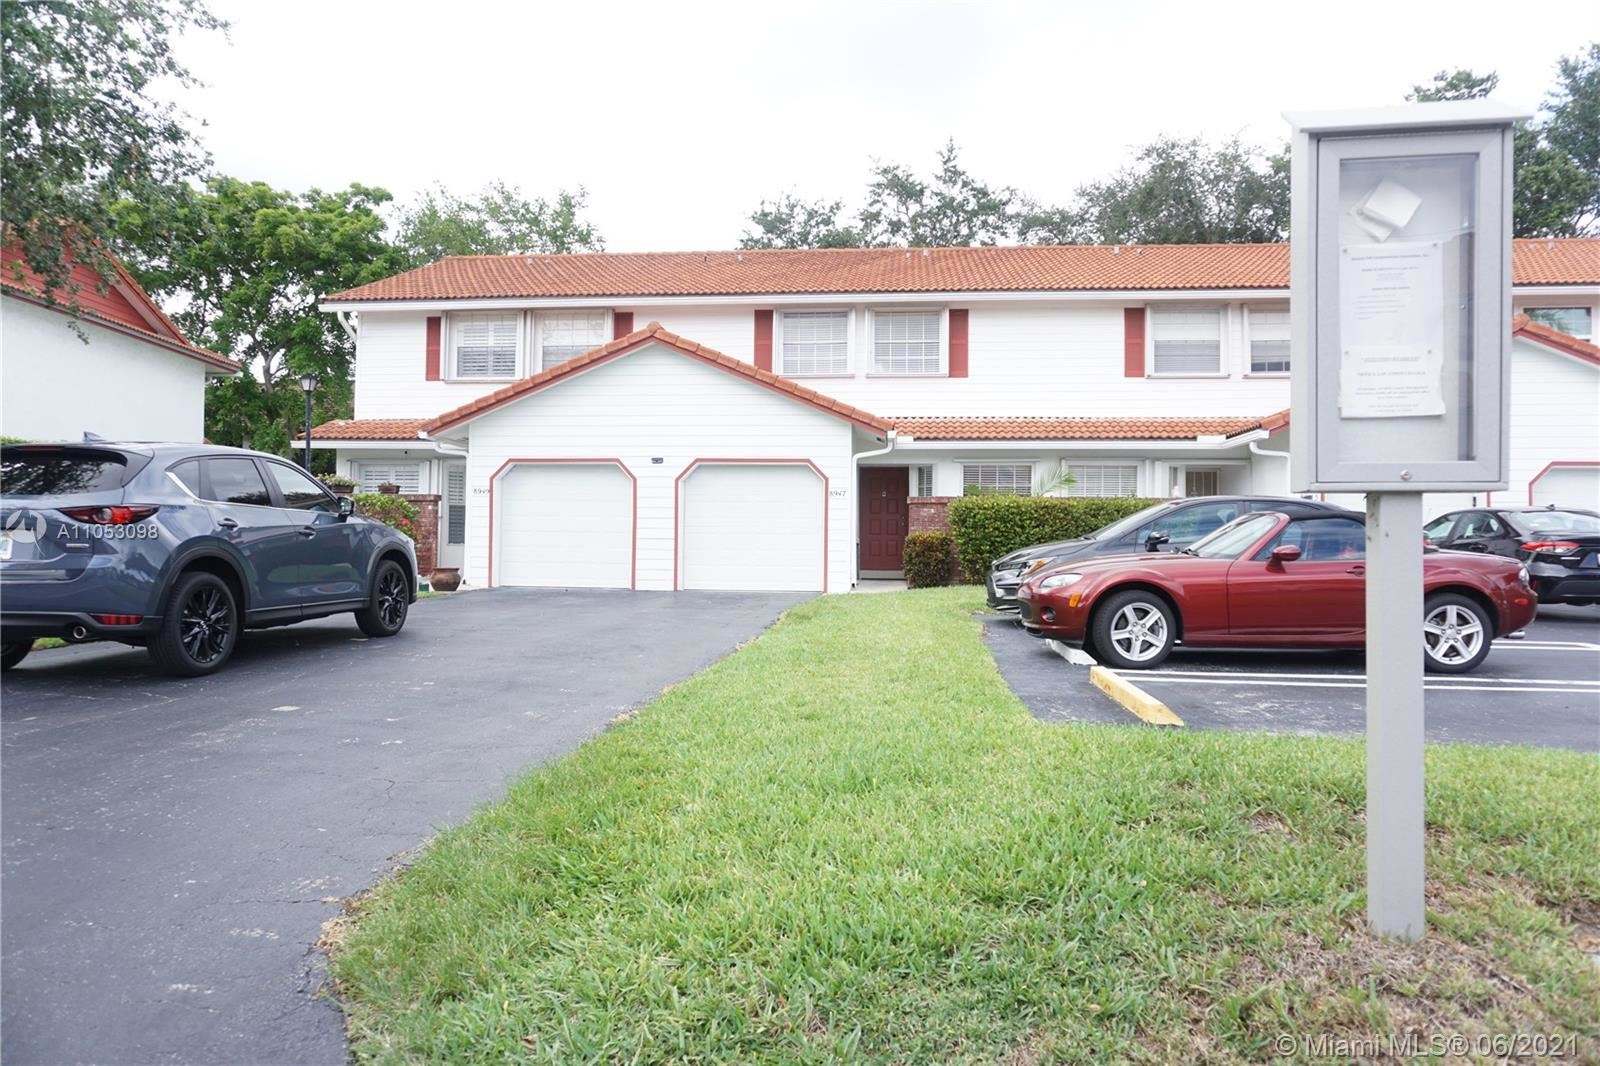 8947 NW 23rd St #8947, Coral Springs, FL 33065 - #: A11053098